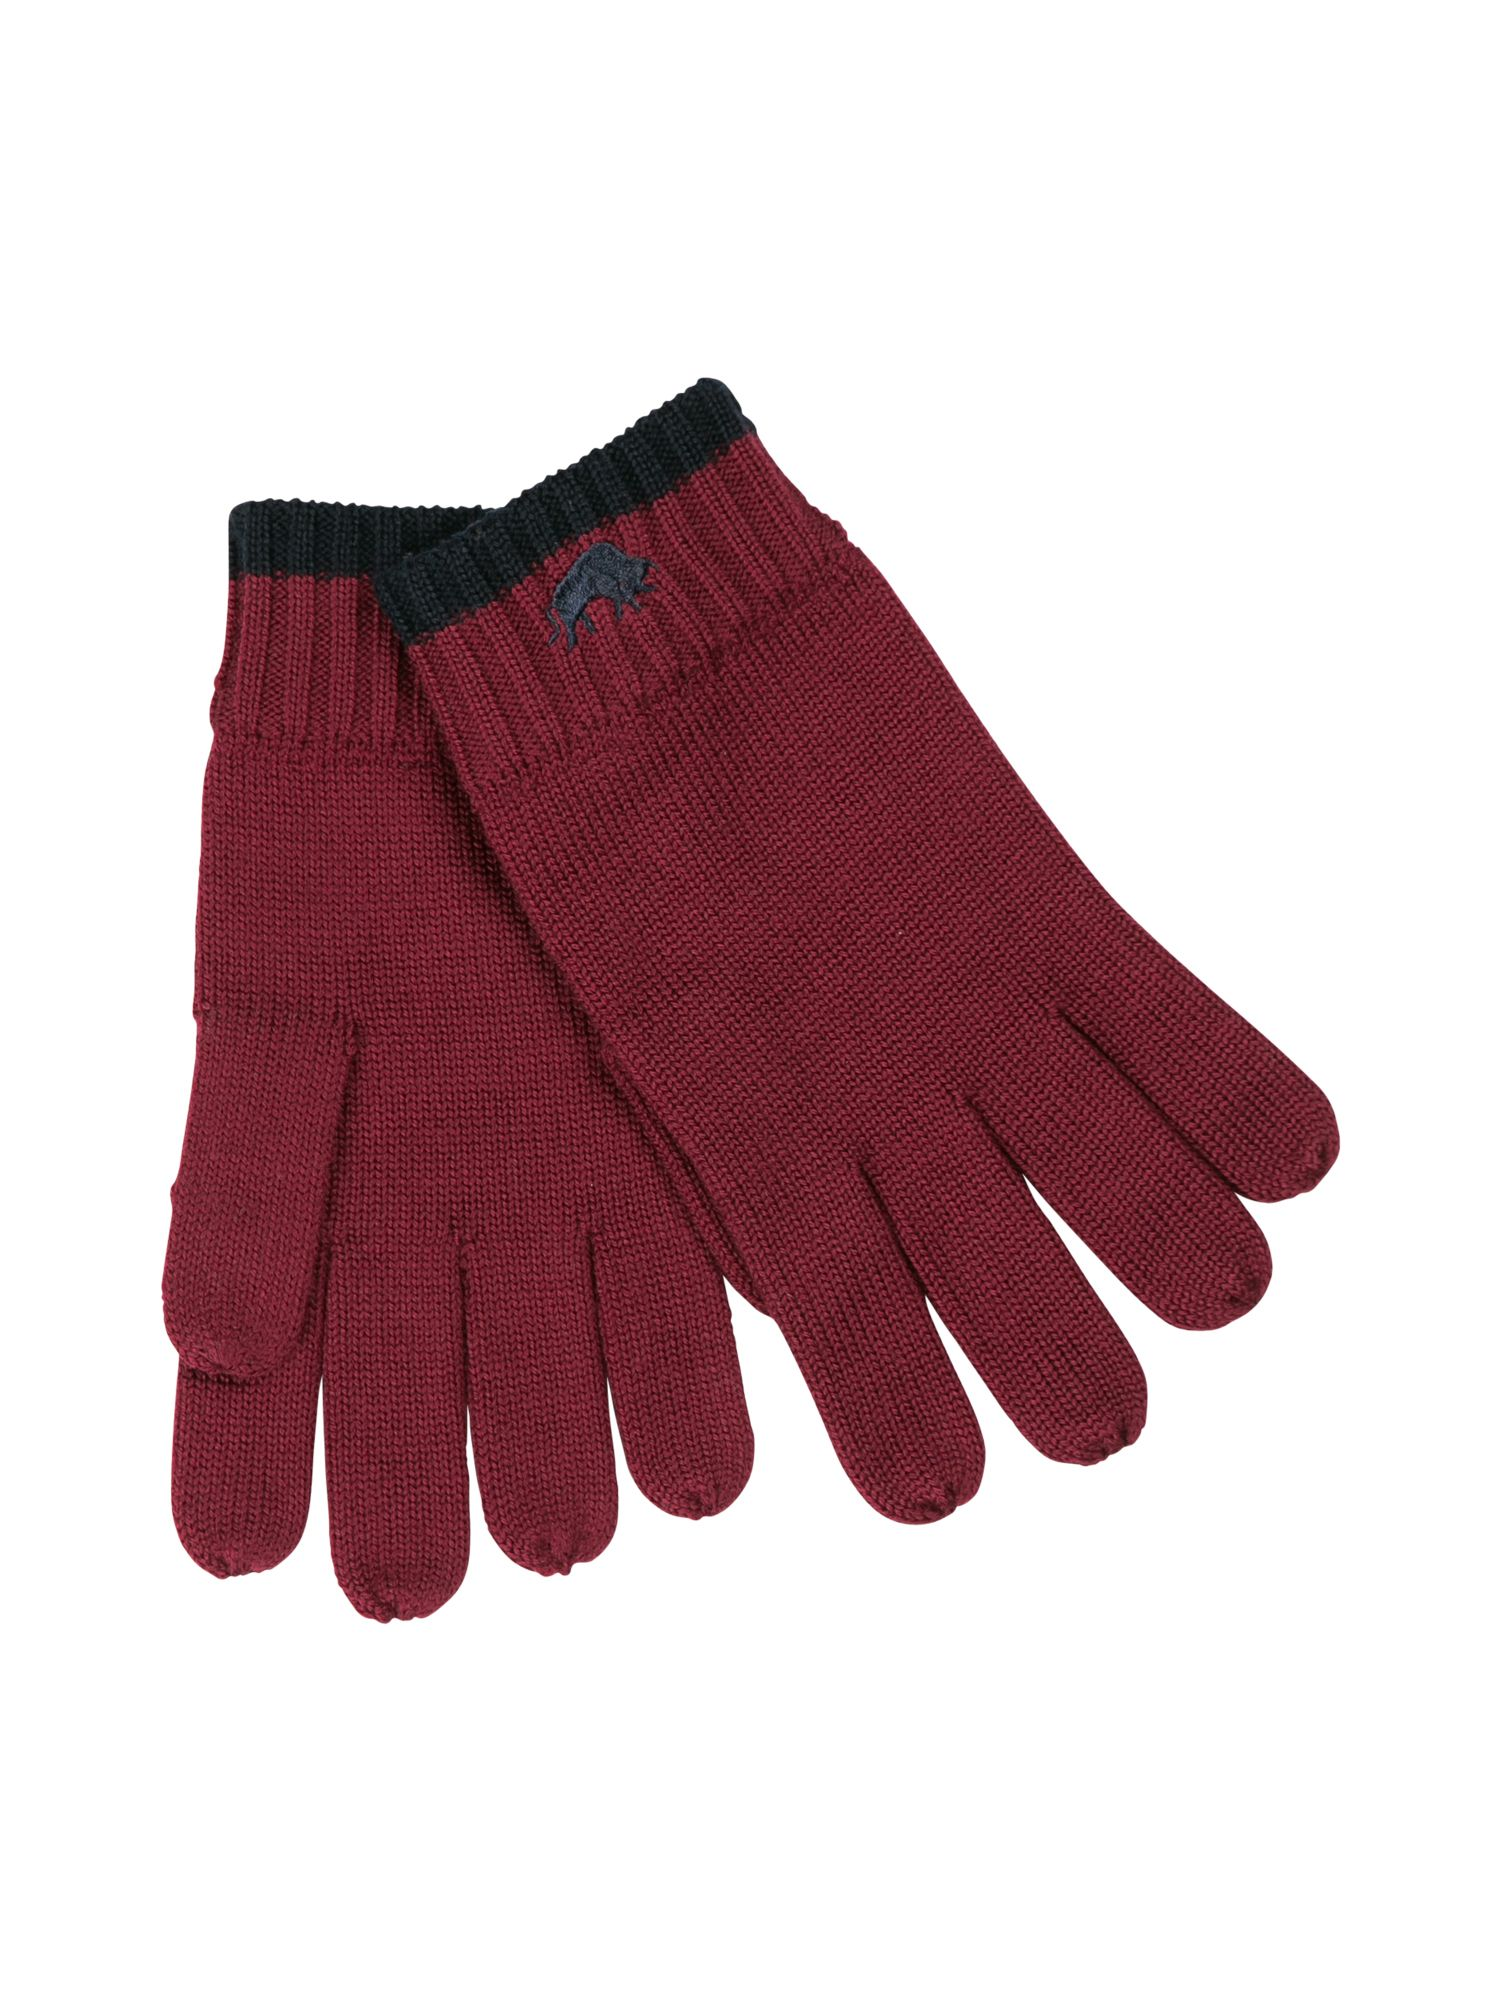 Rb wool gloves claret